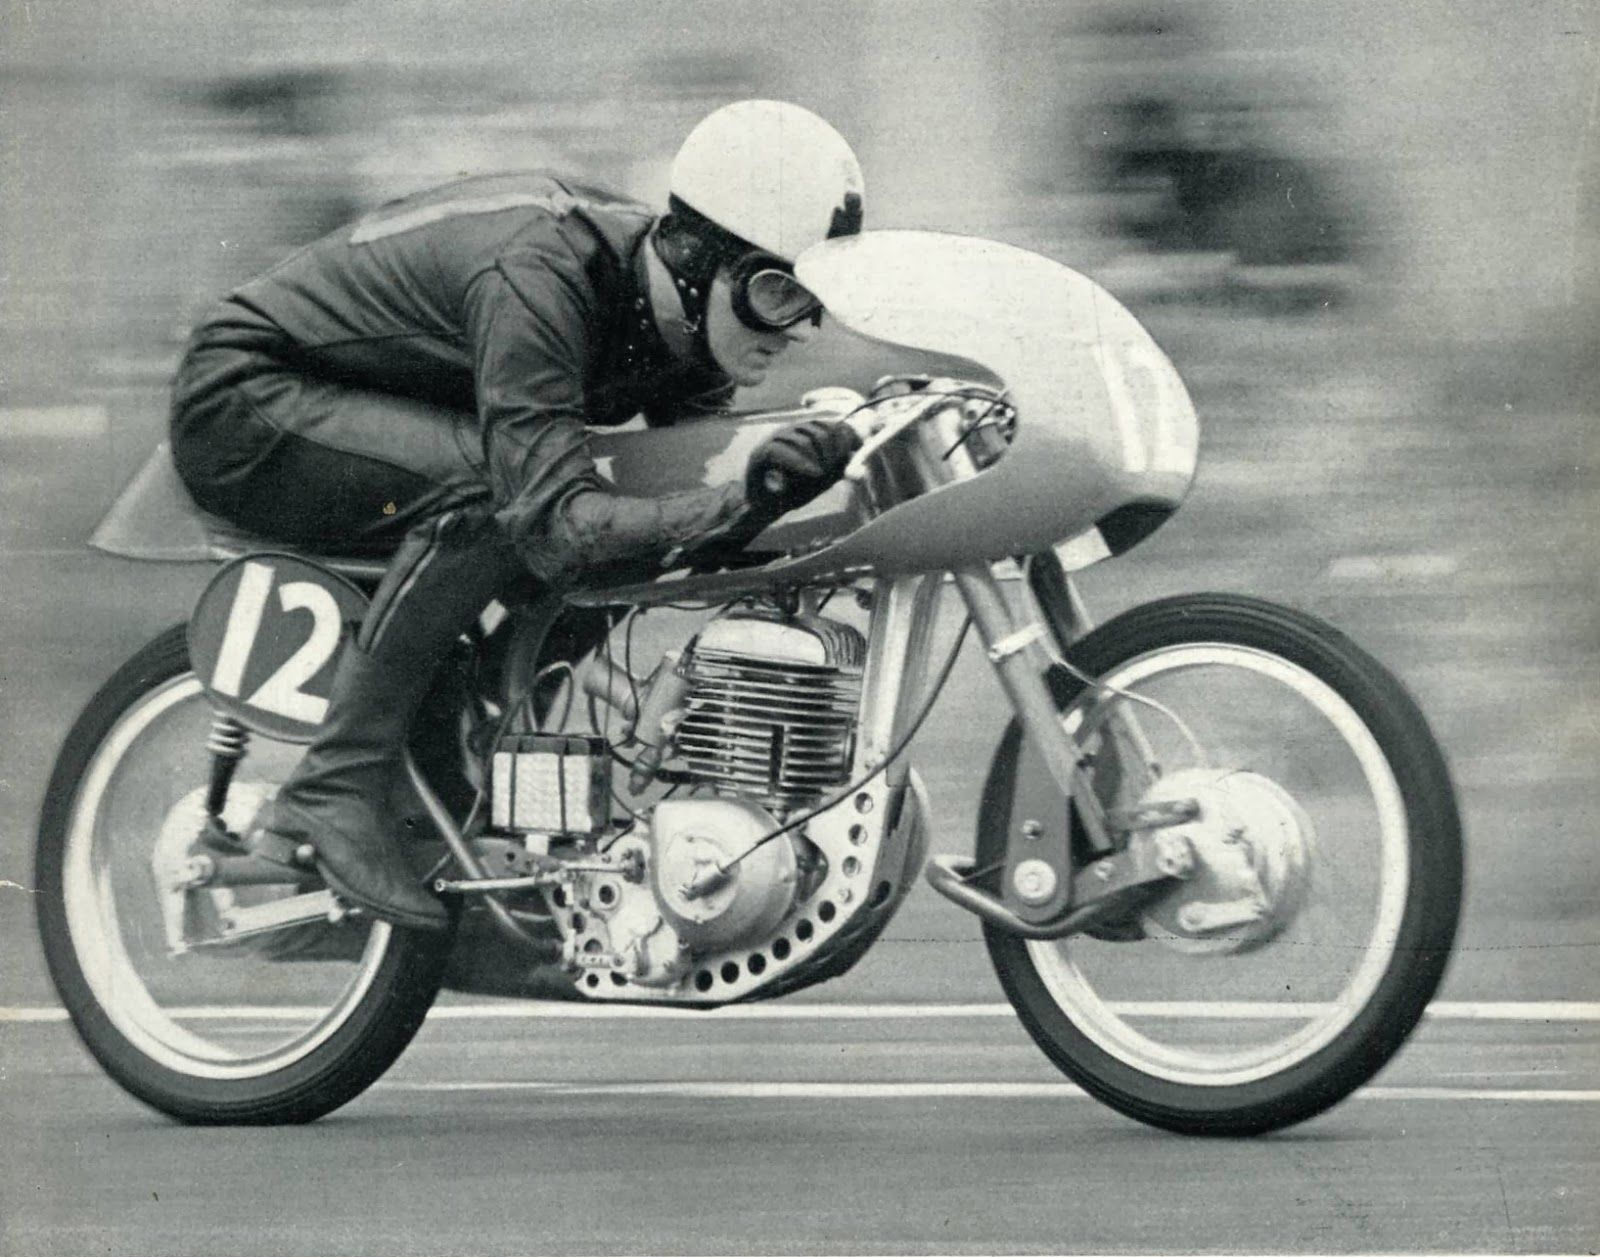 best images about motorcycles grand prix racing joe dunphy on his greeves silverstone at the 1963 meeting at mallory park motorcycles diariesracing